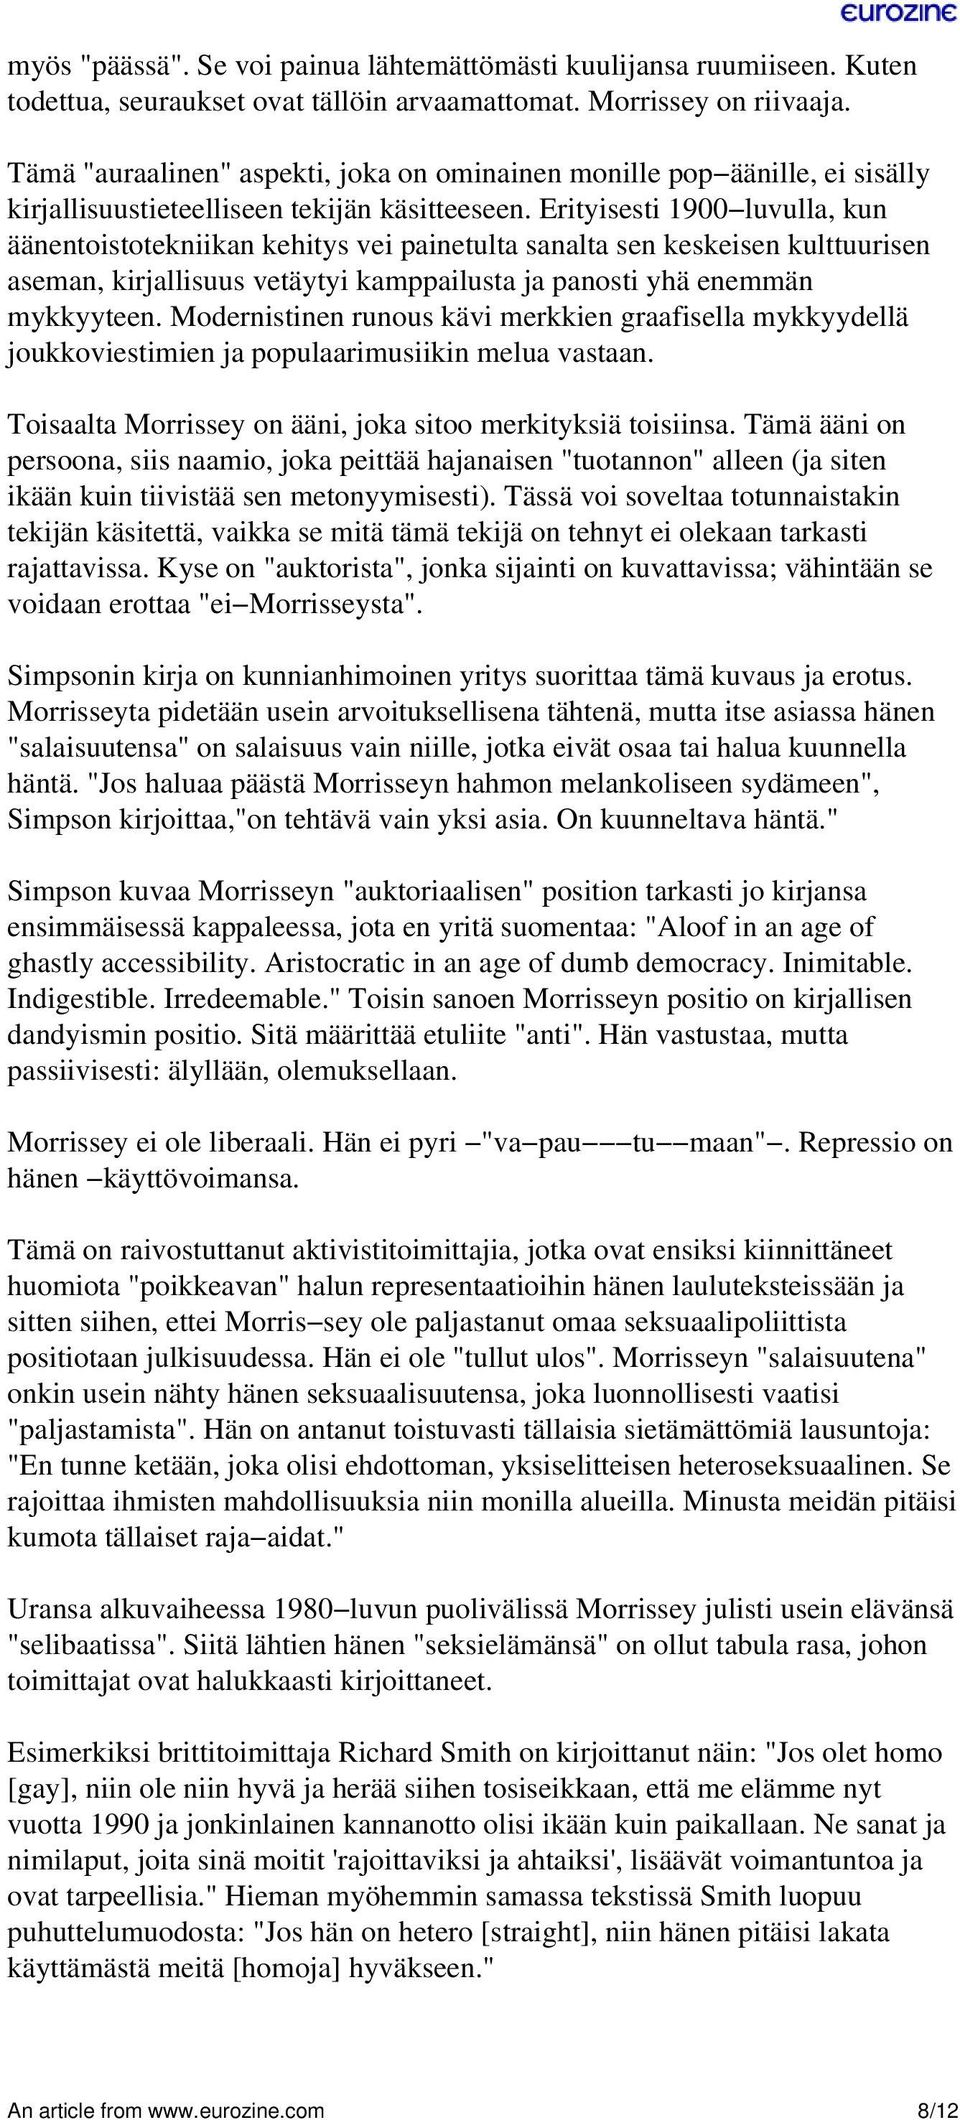 Homo seksiä potitions